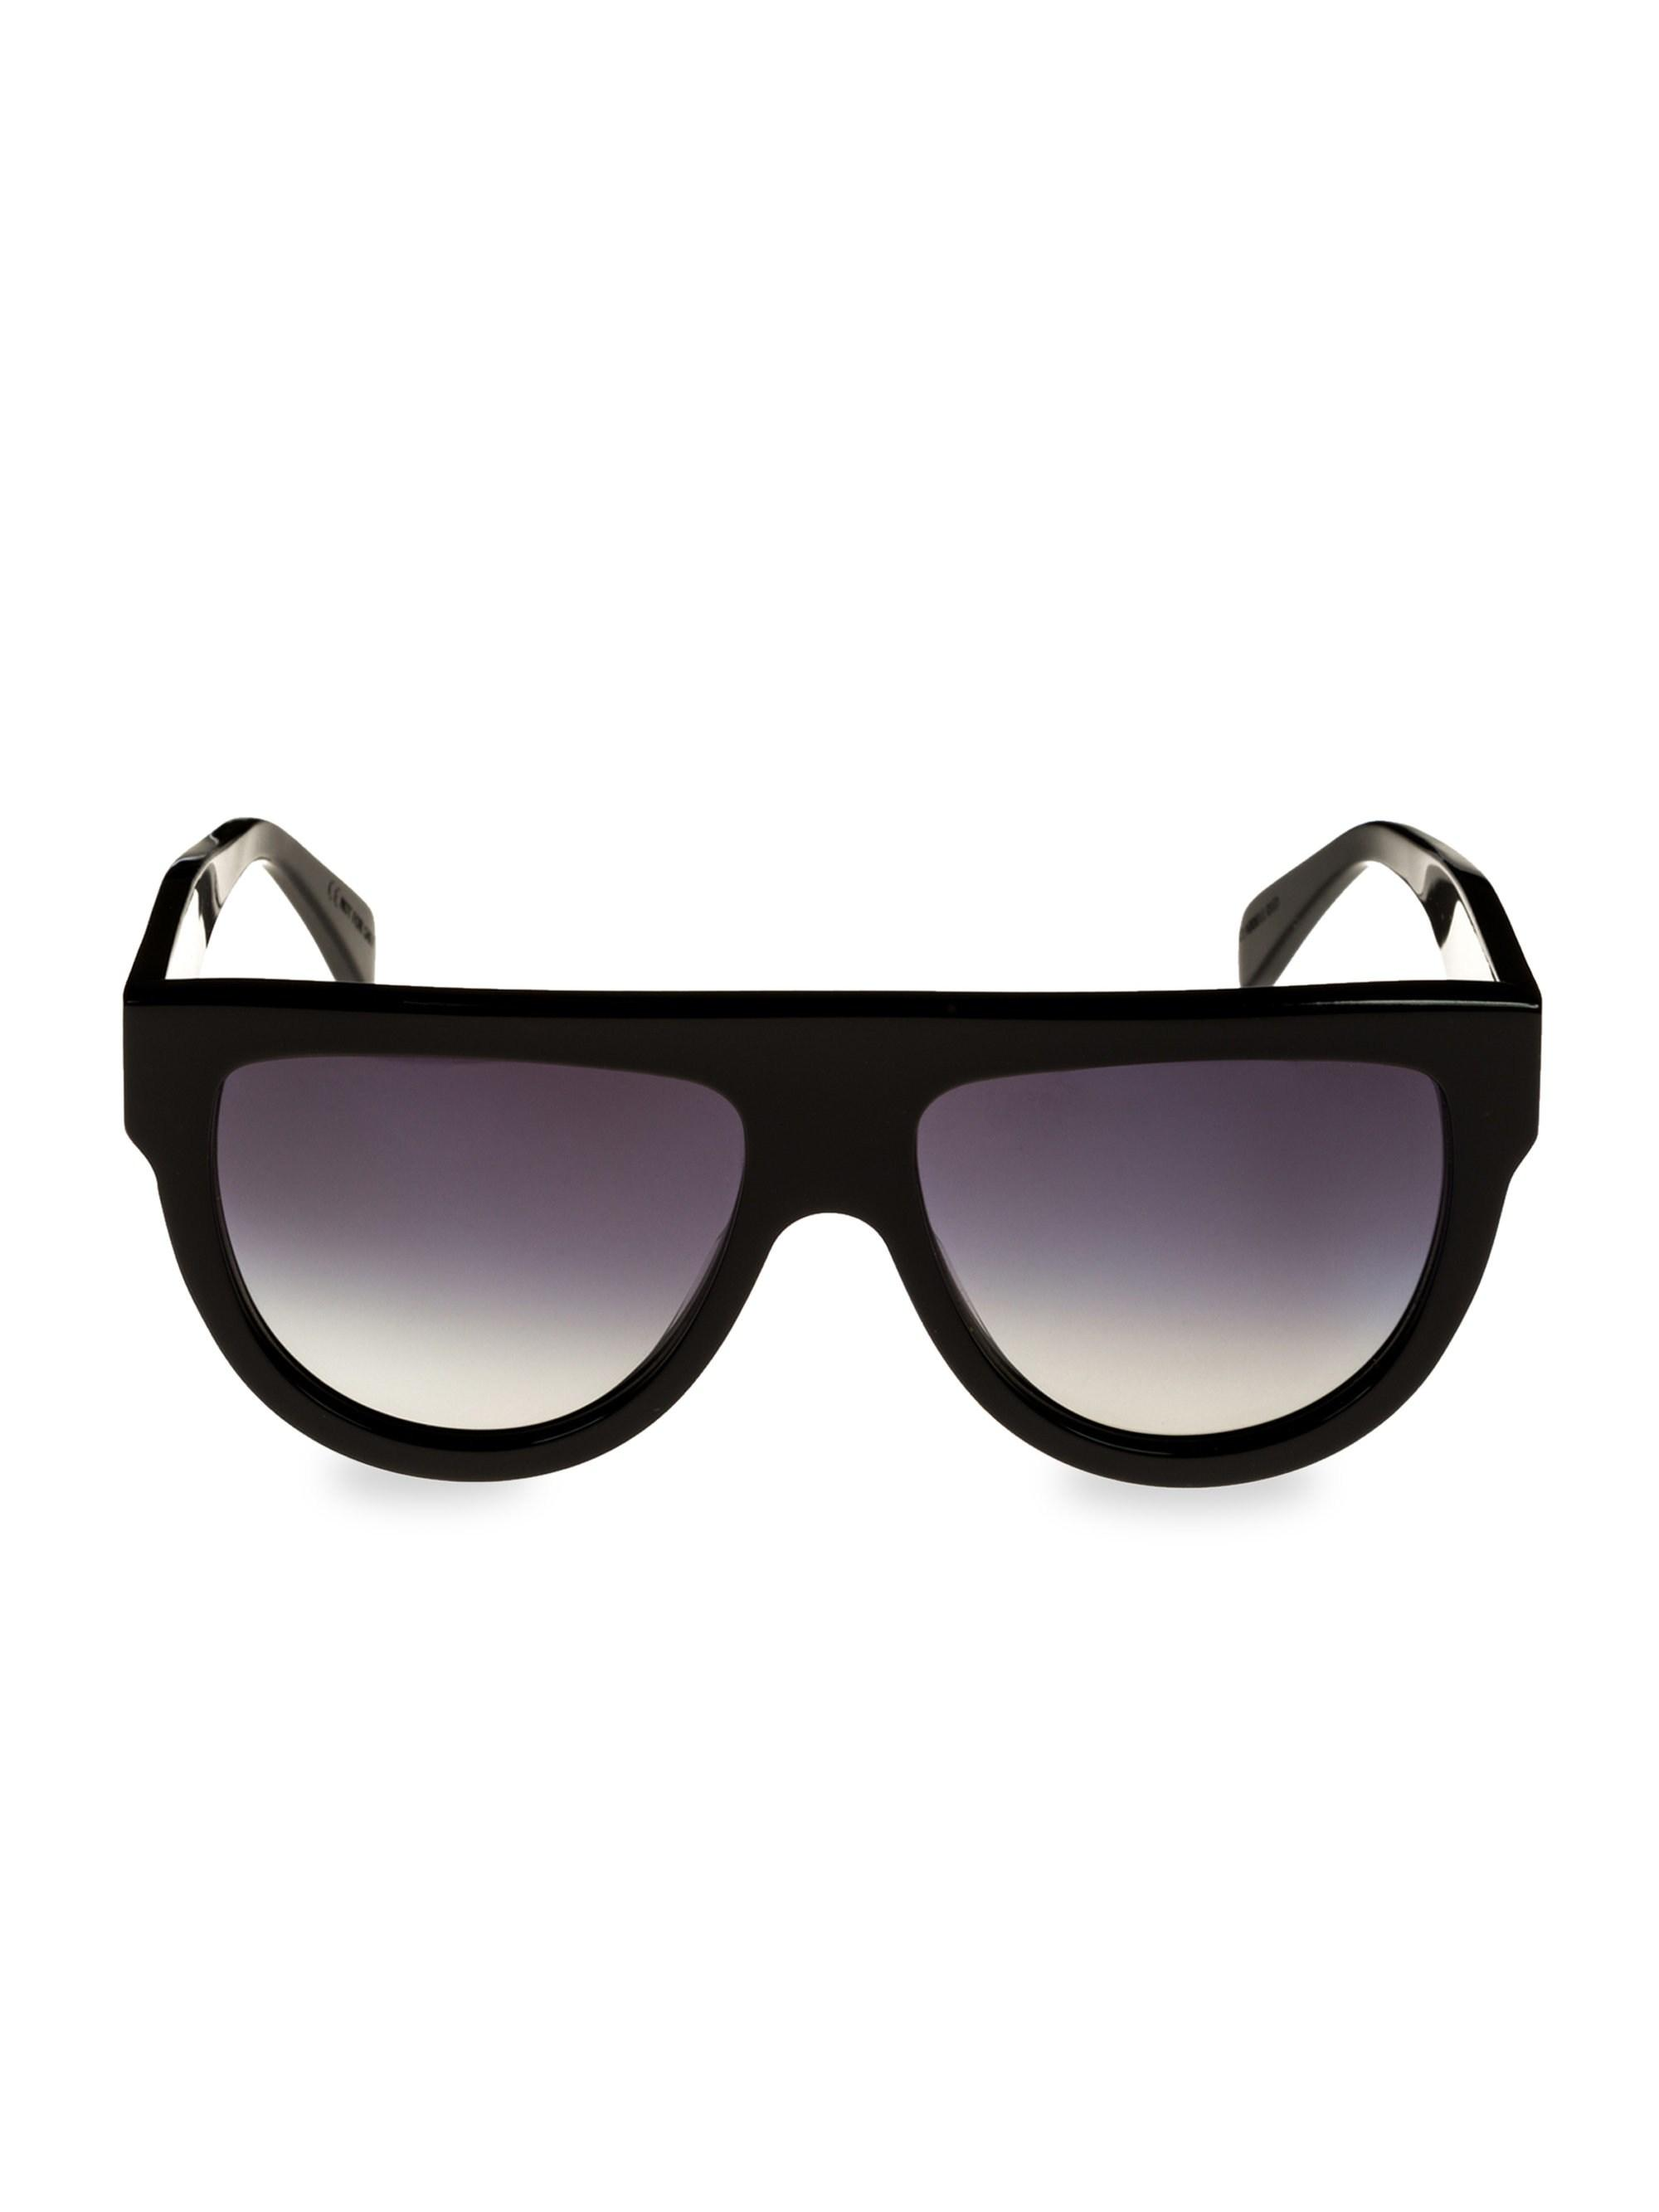 d3d48ac95323 Lyst - Céline Flat Top Aviator Sunglasses in Black